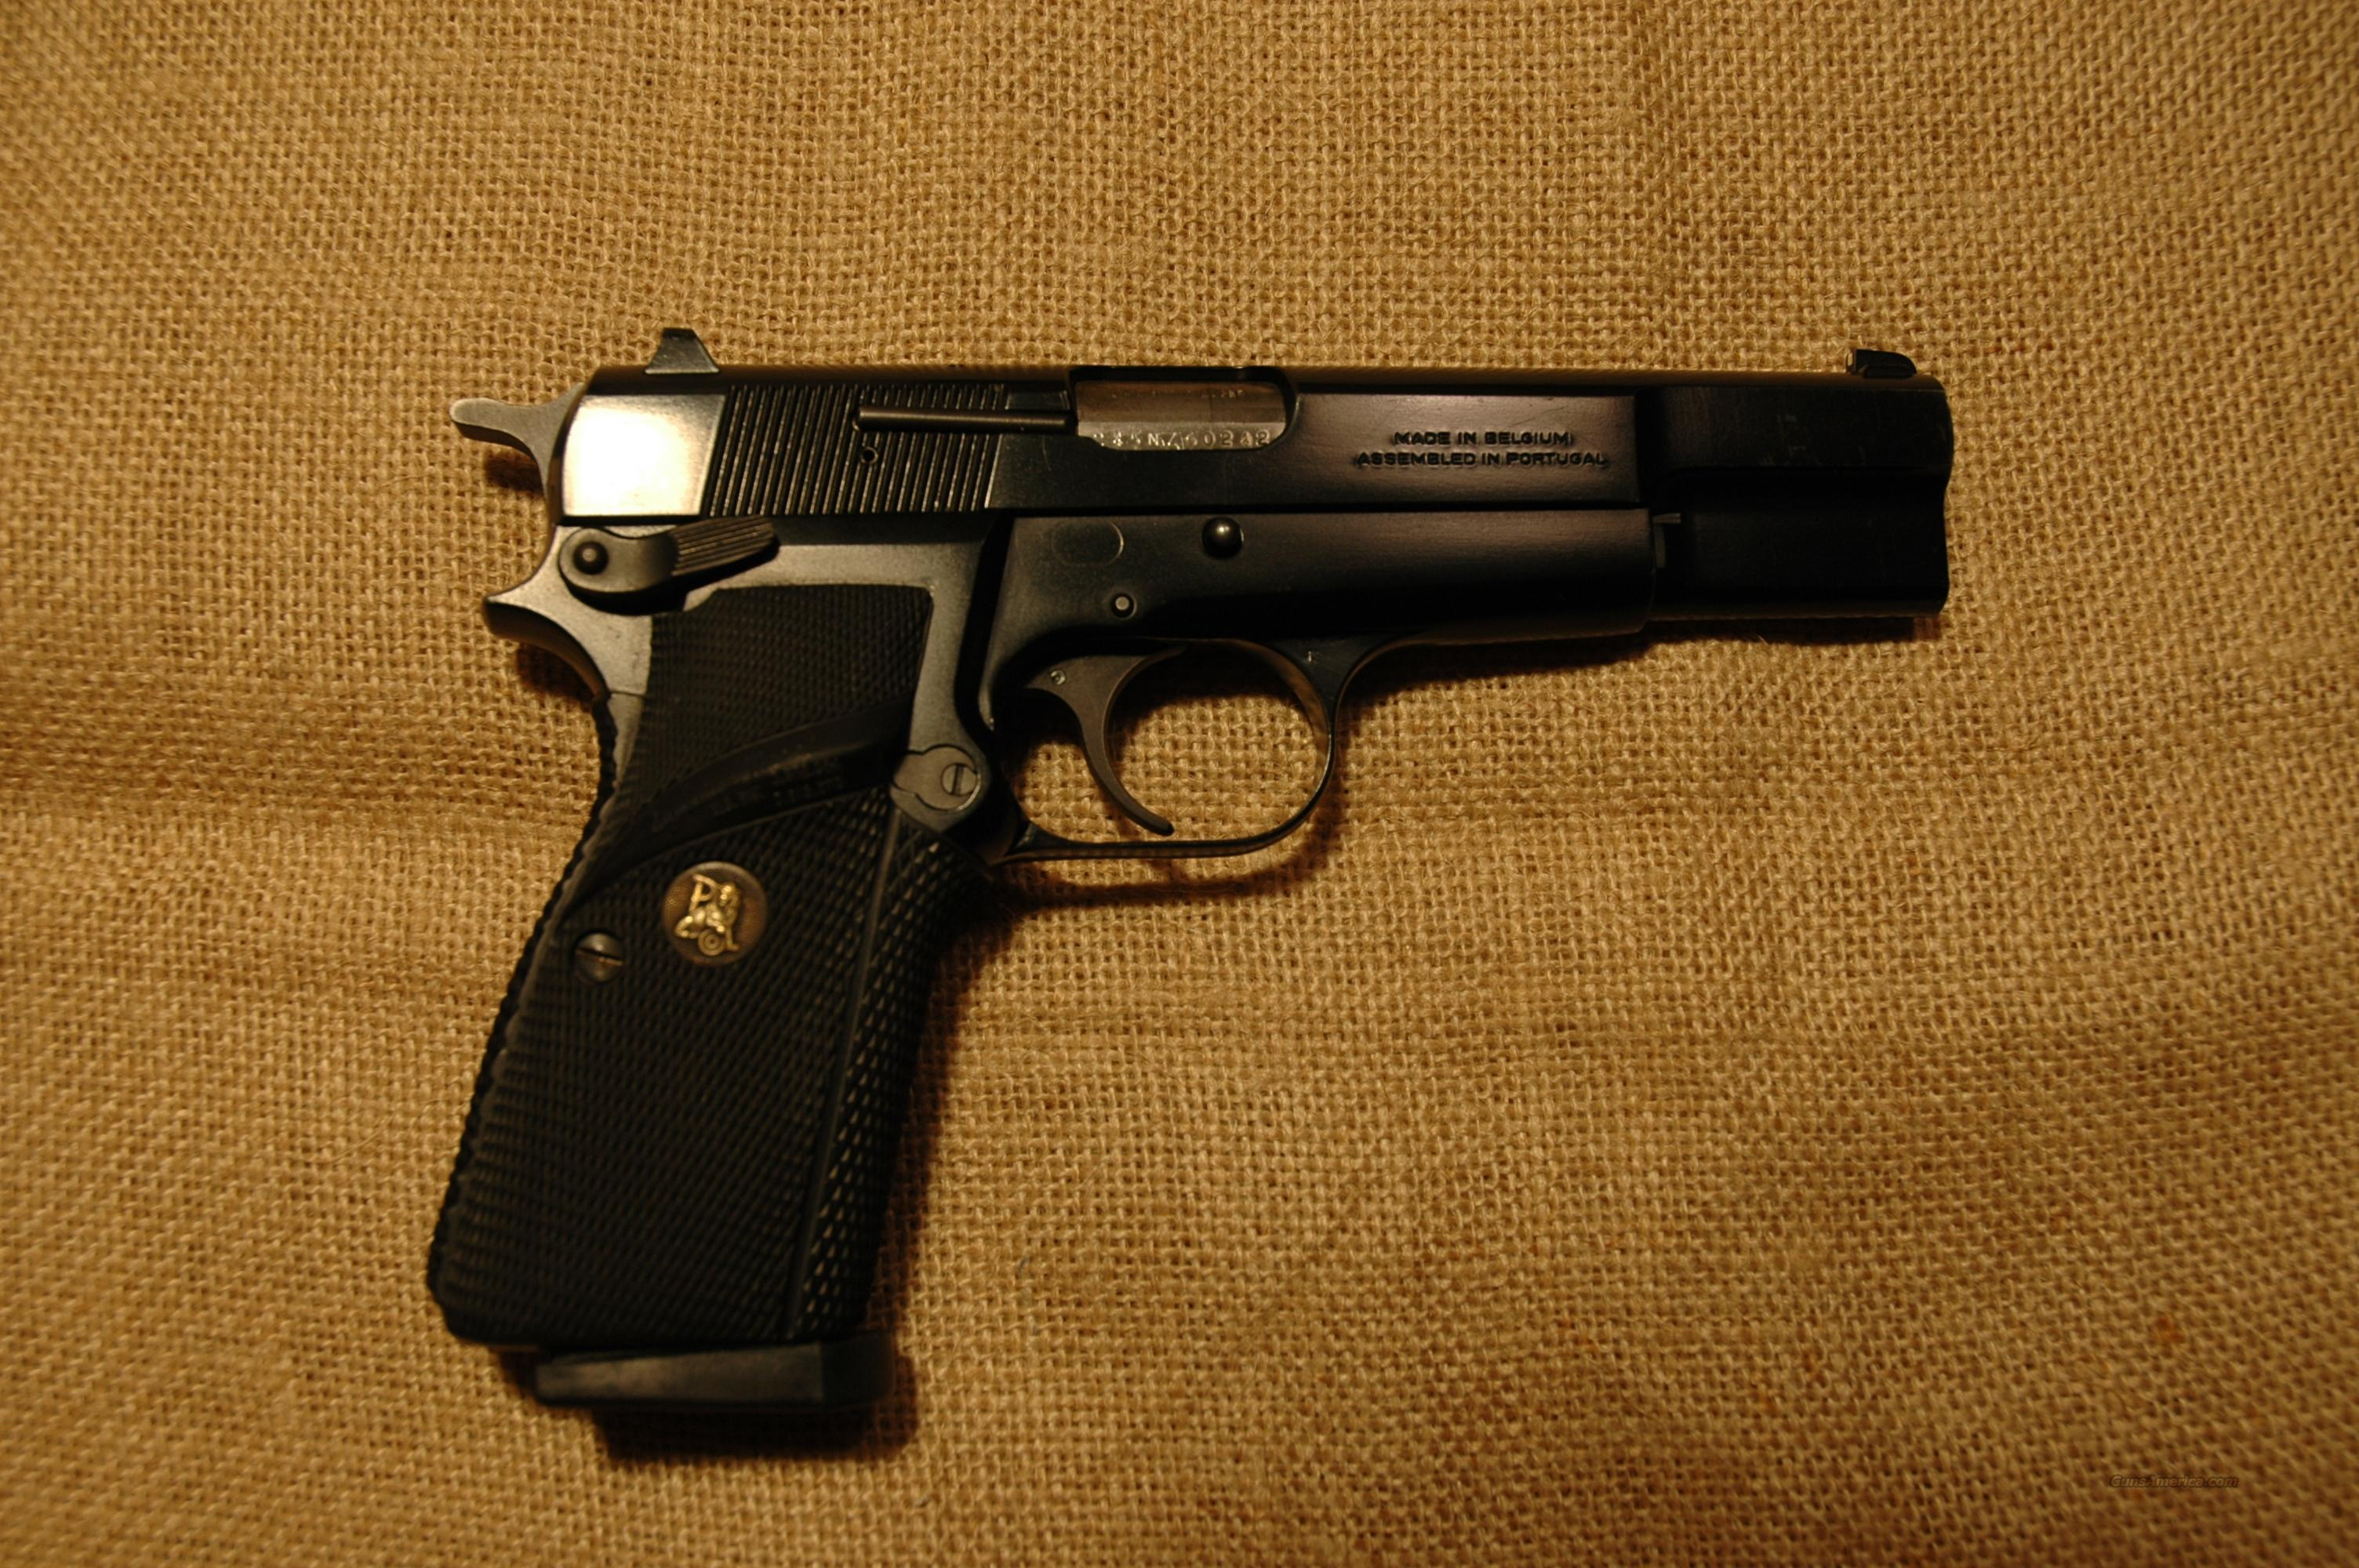 Browning Hi Power 9mm -   Guns > Pistols > Browning Pistols > Hi Power